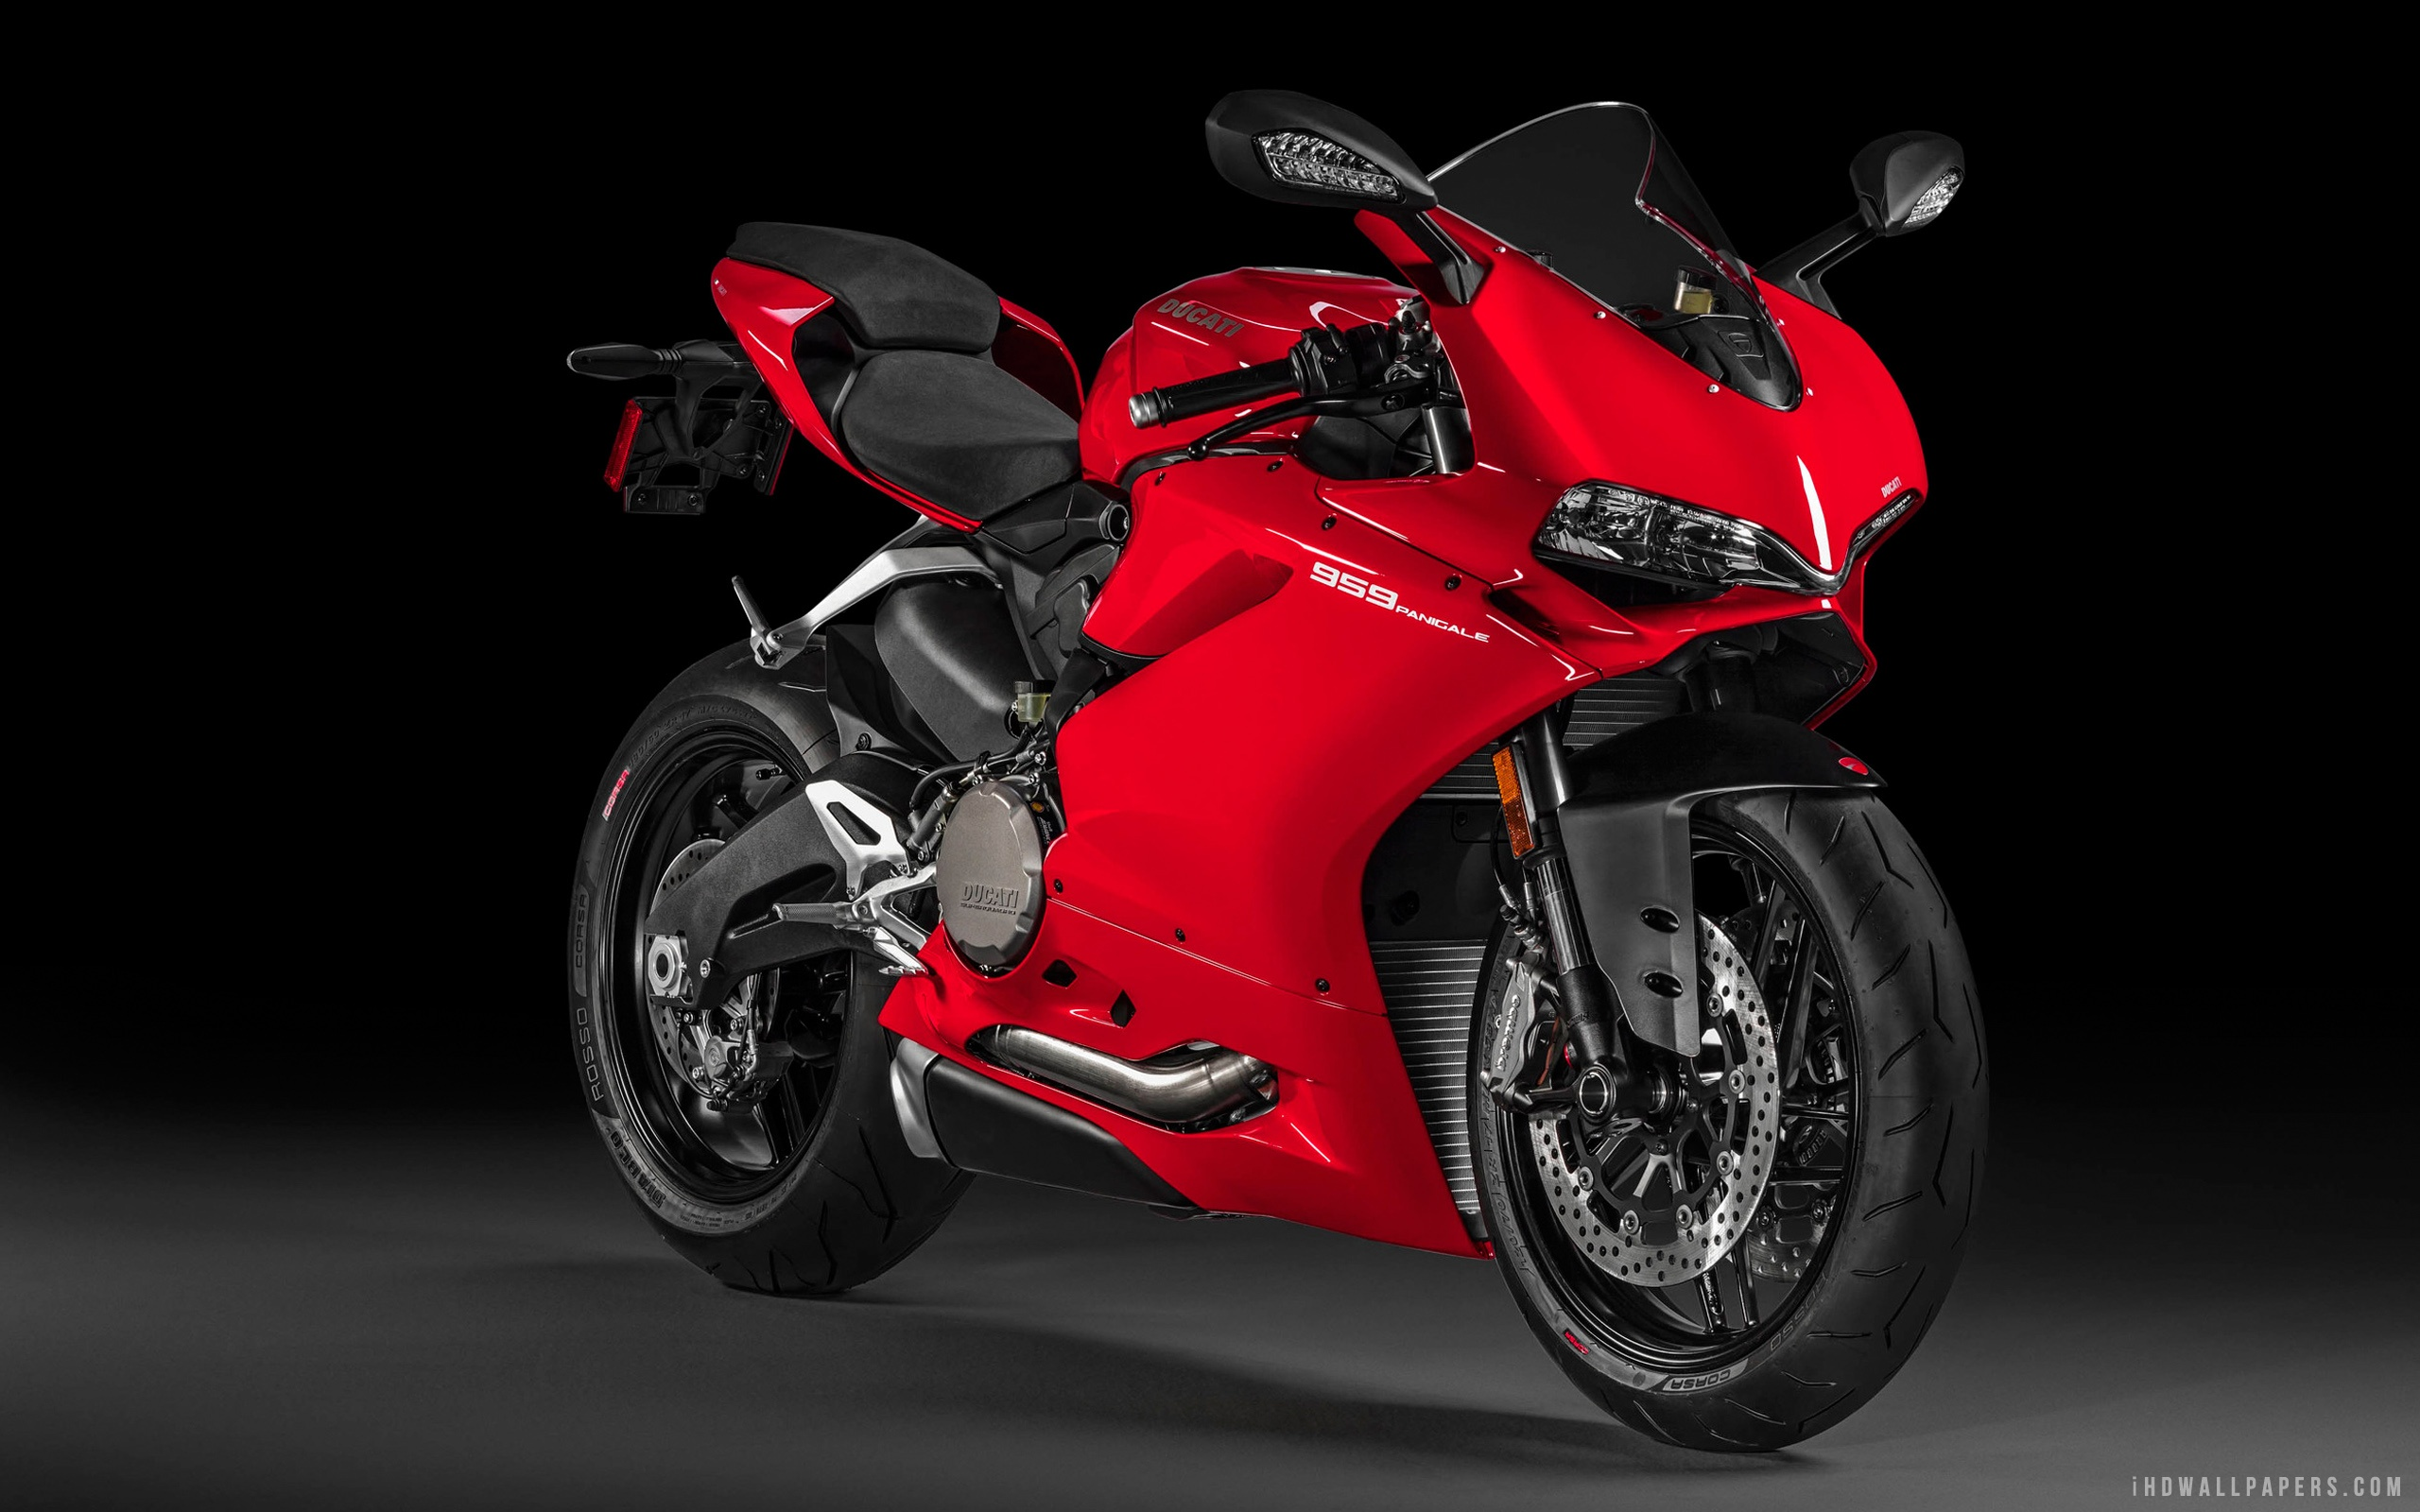 Ducati 959 Panigale 2016 wallpaper bikes and motorcycles 2560x1600